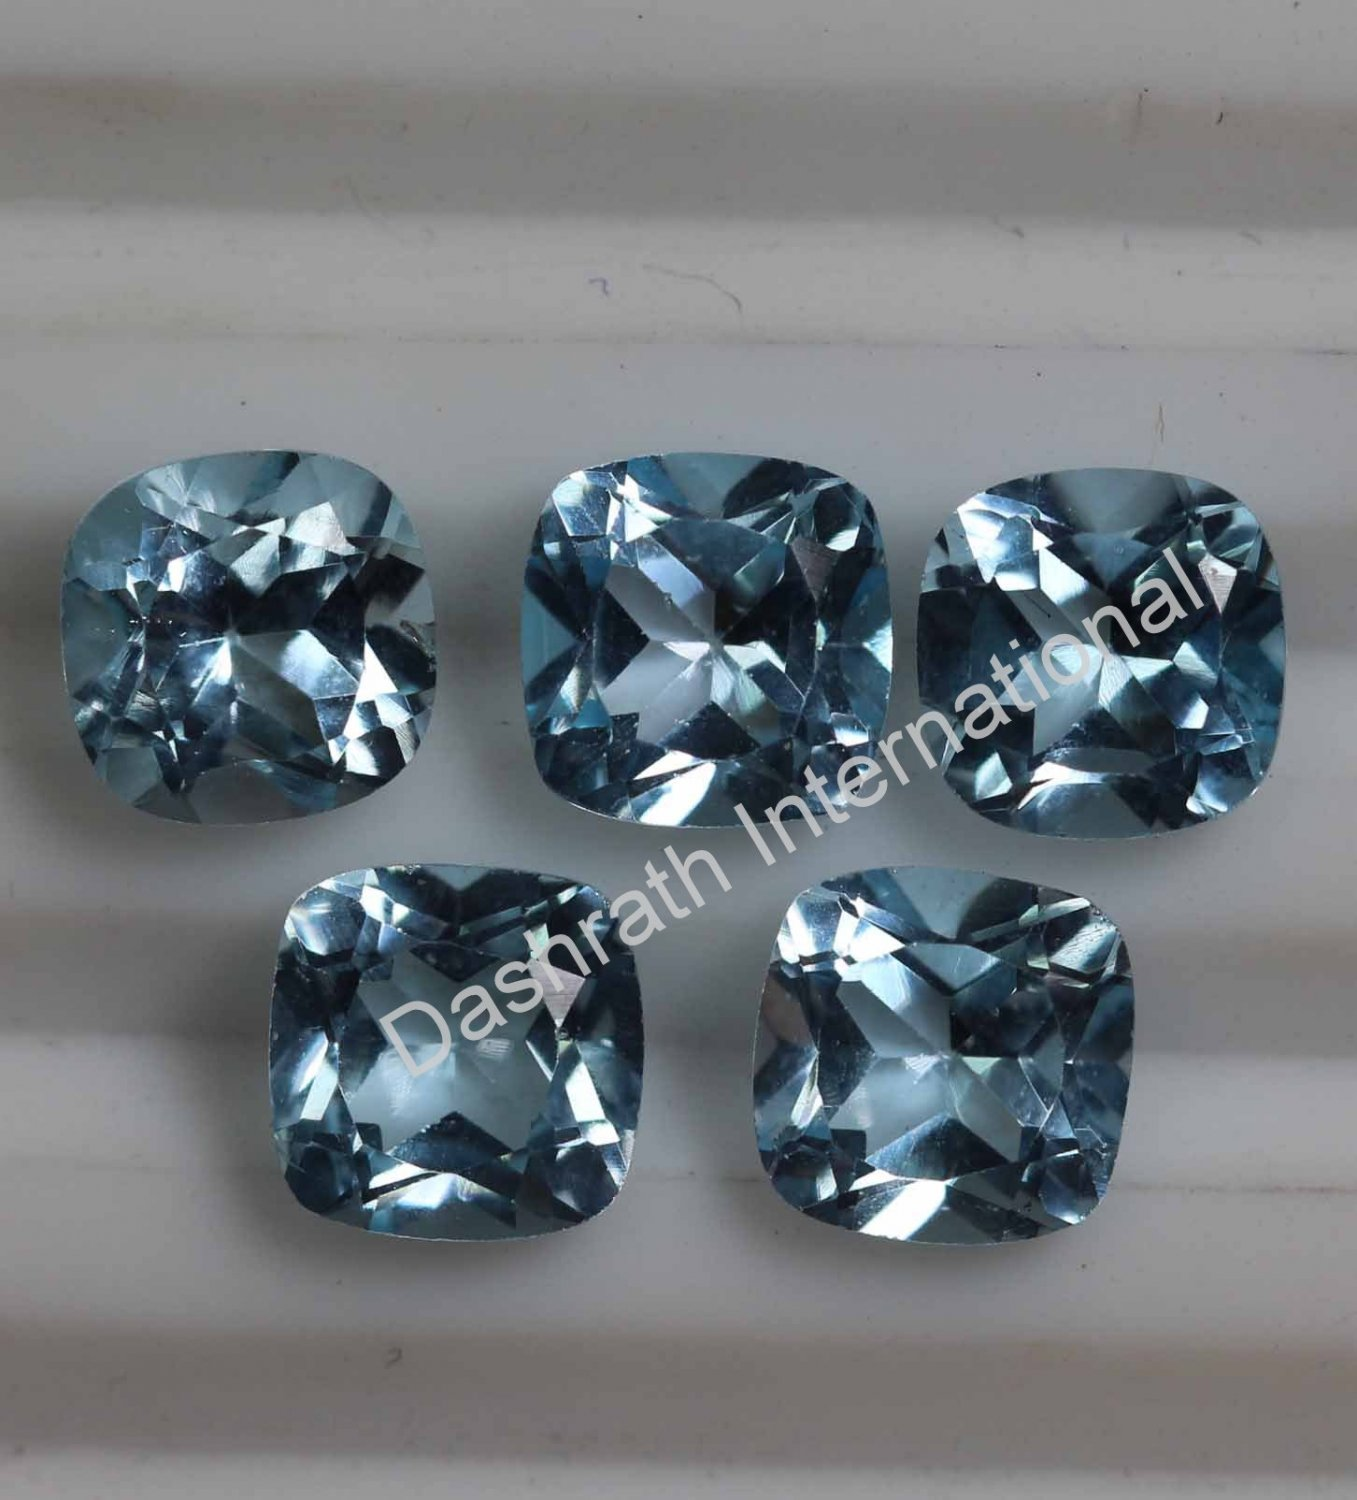 8mm Natural Sky Blue Topaz Faceted Cut Cushion 25 Pieces Lot Top Quality Loose Gemstone